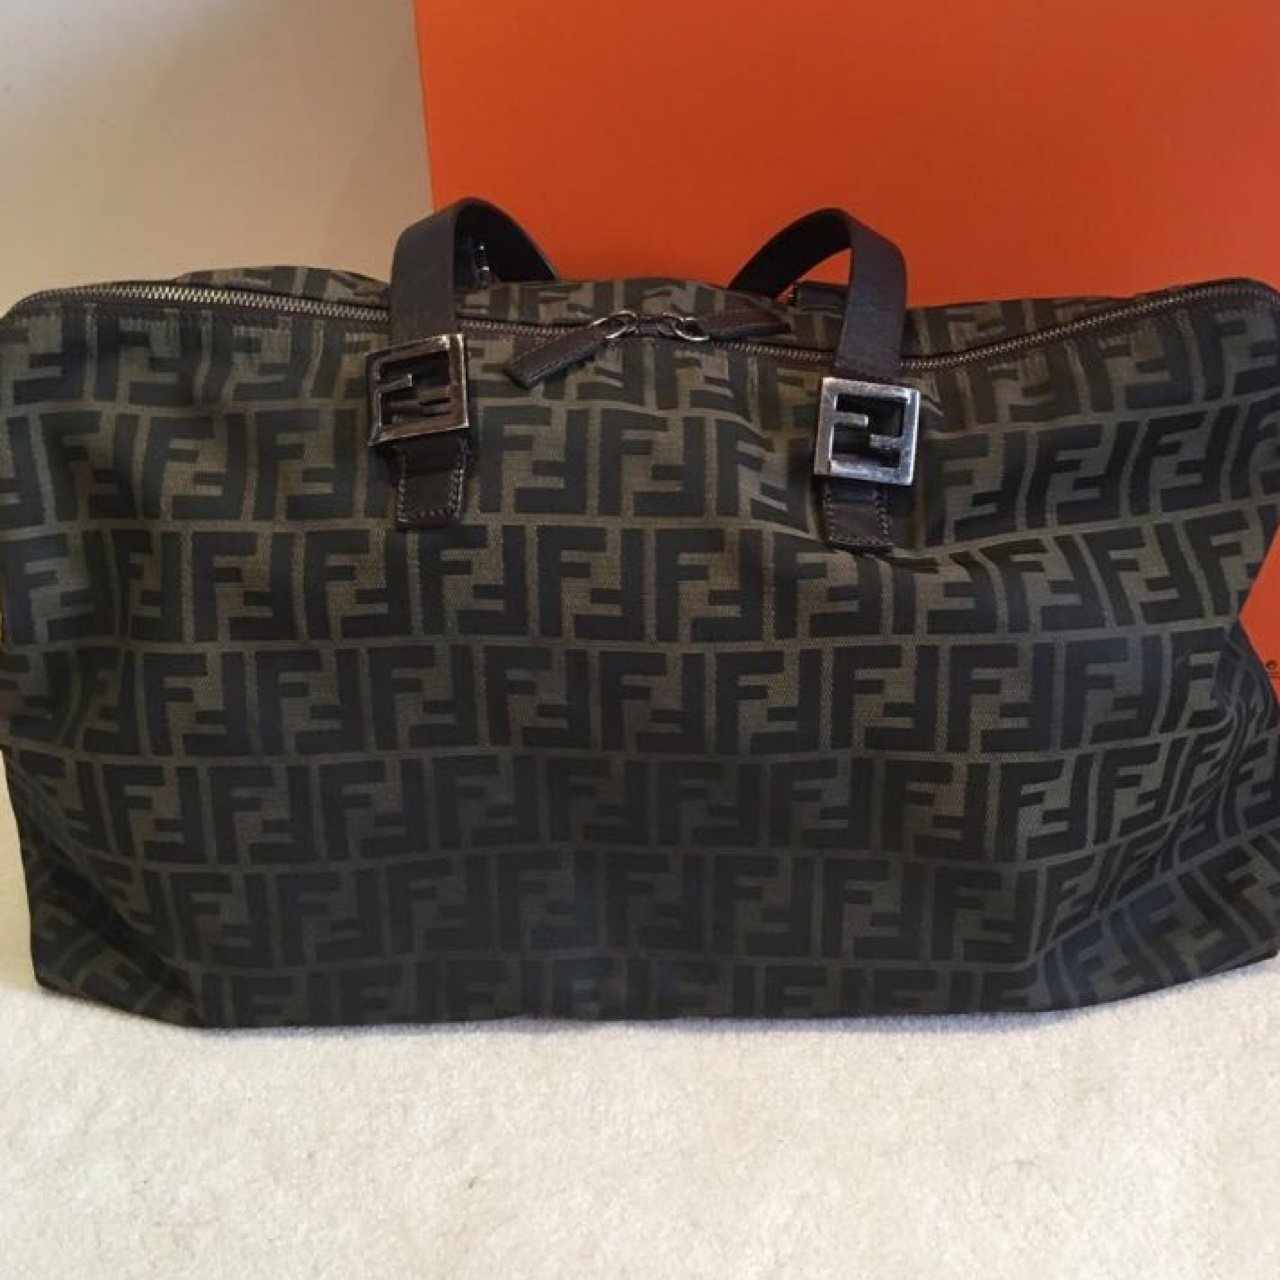 89ae742315 WTB THIS FENDI DUFFLE BAG. NEED ONE BAD LET ME KNOW IF YOU ! - Depop